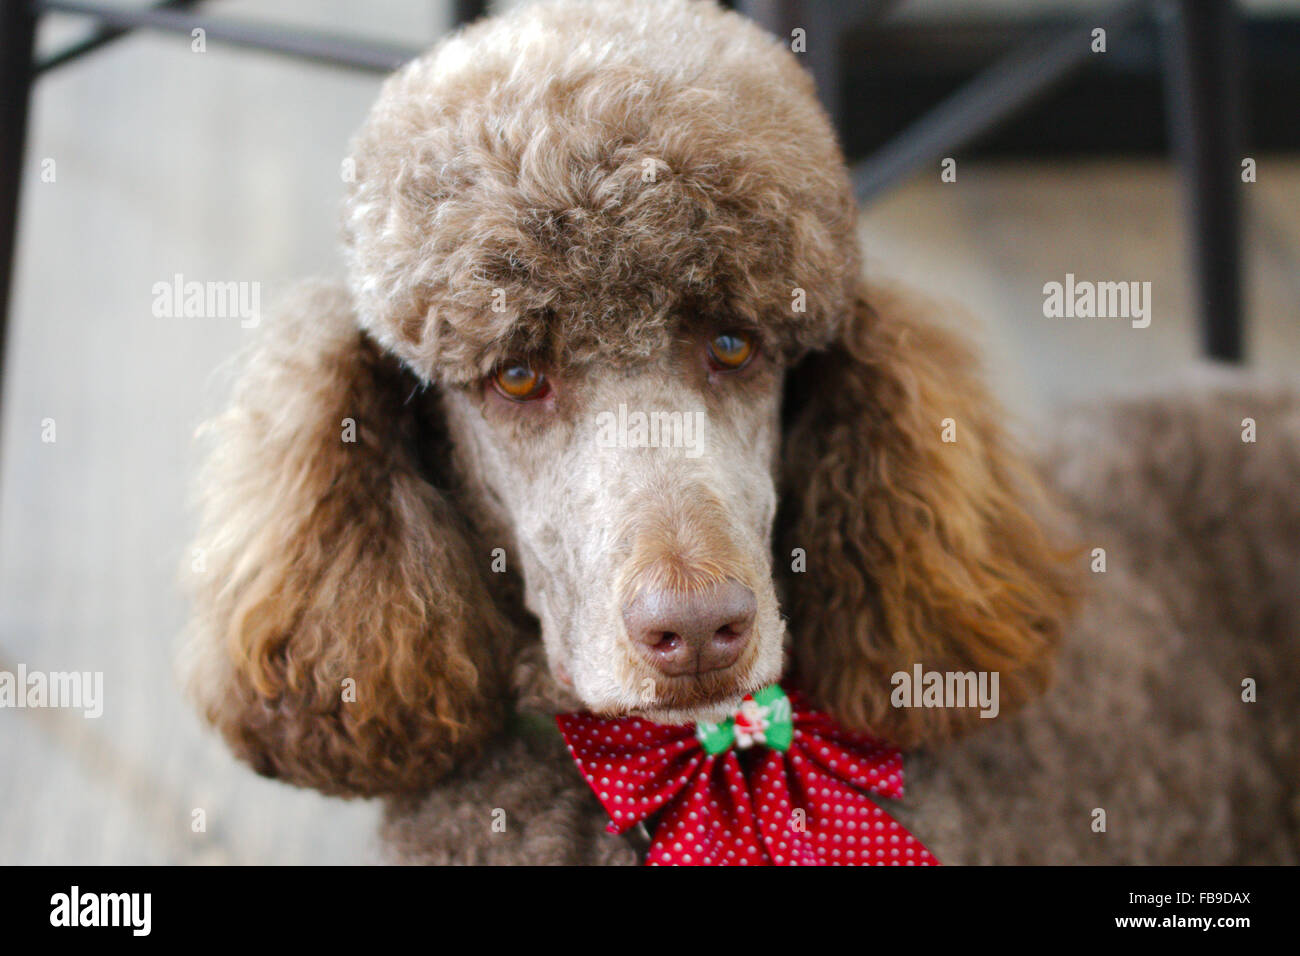 My friend Charlie the standard poodle with bow tie Stock Photo